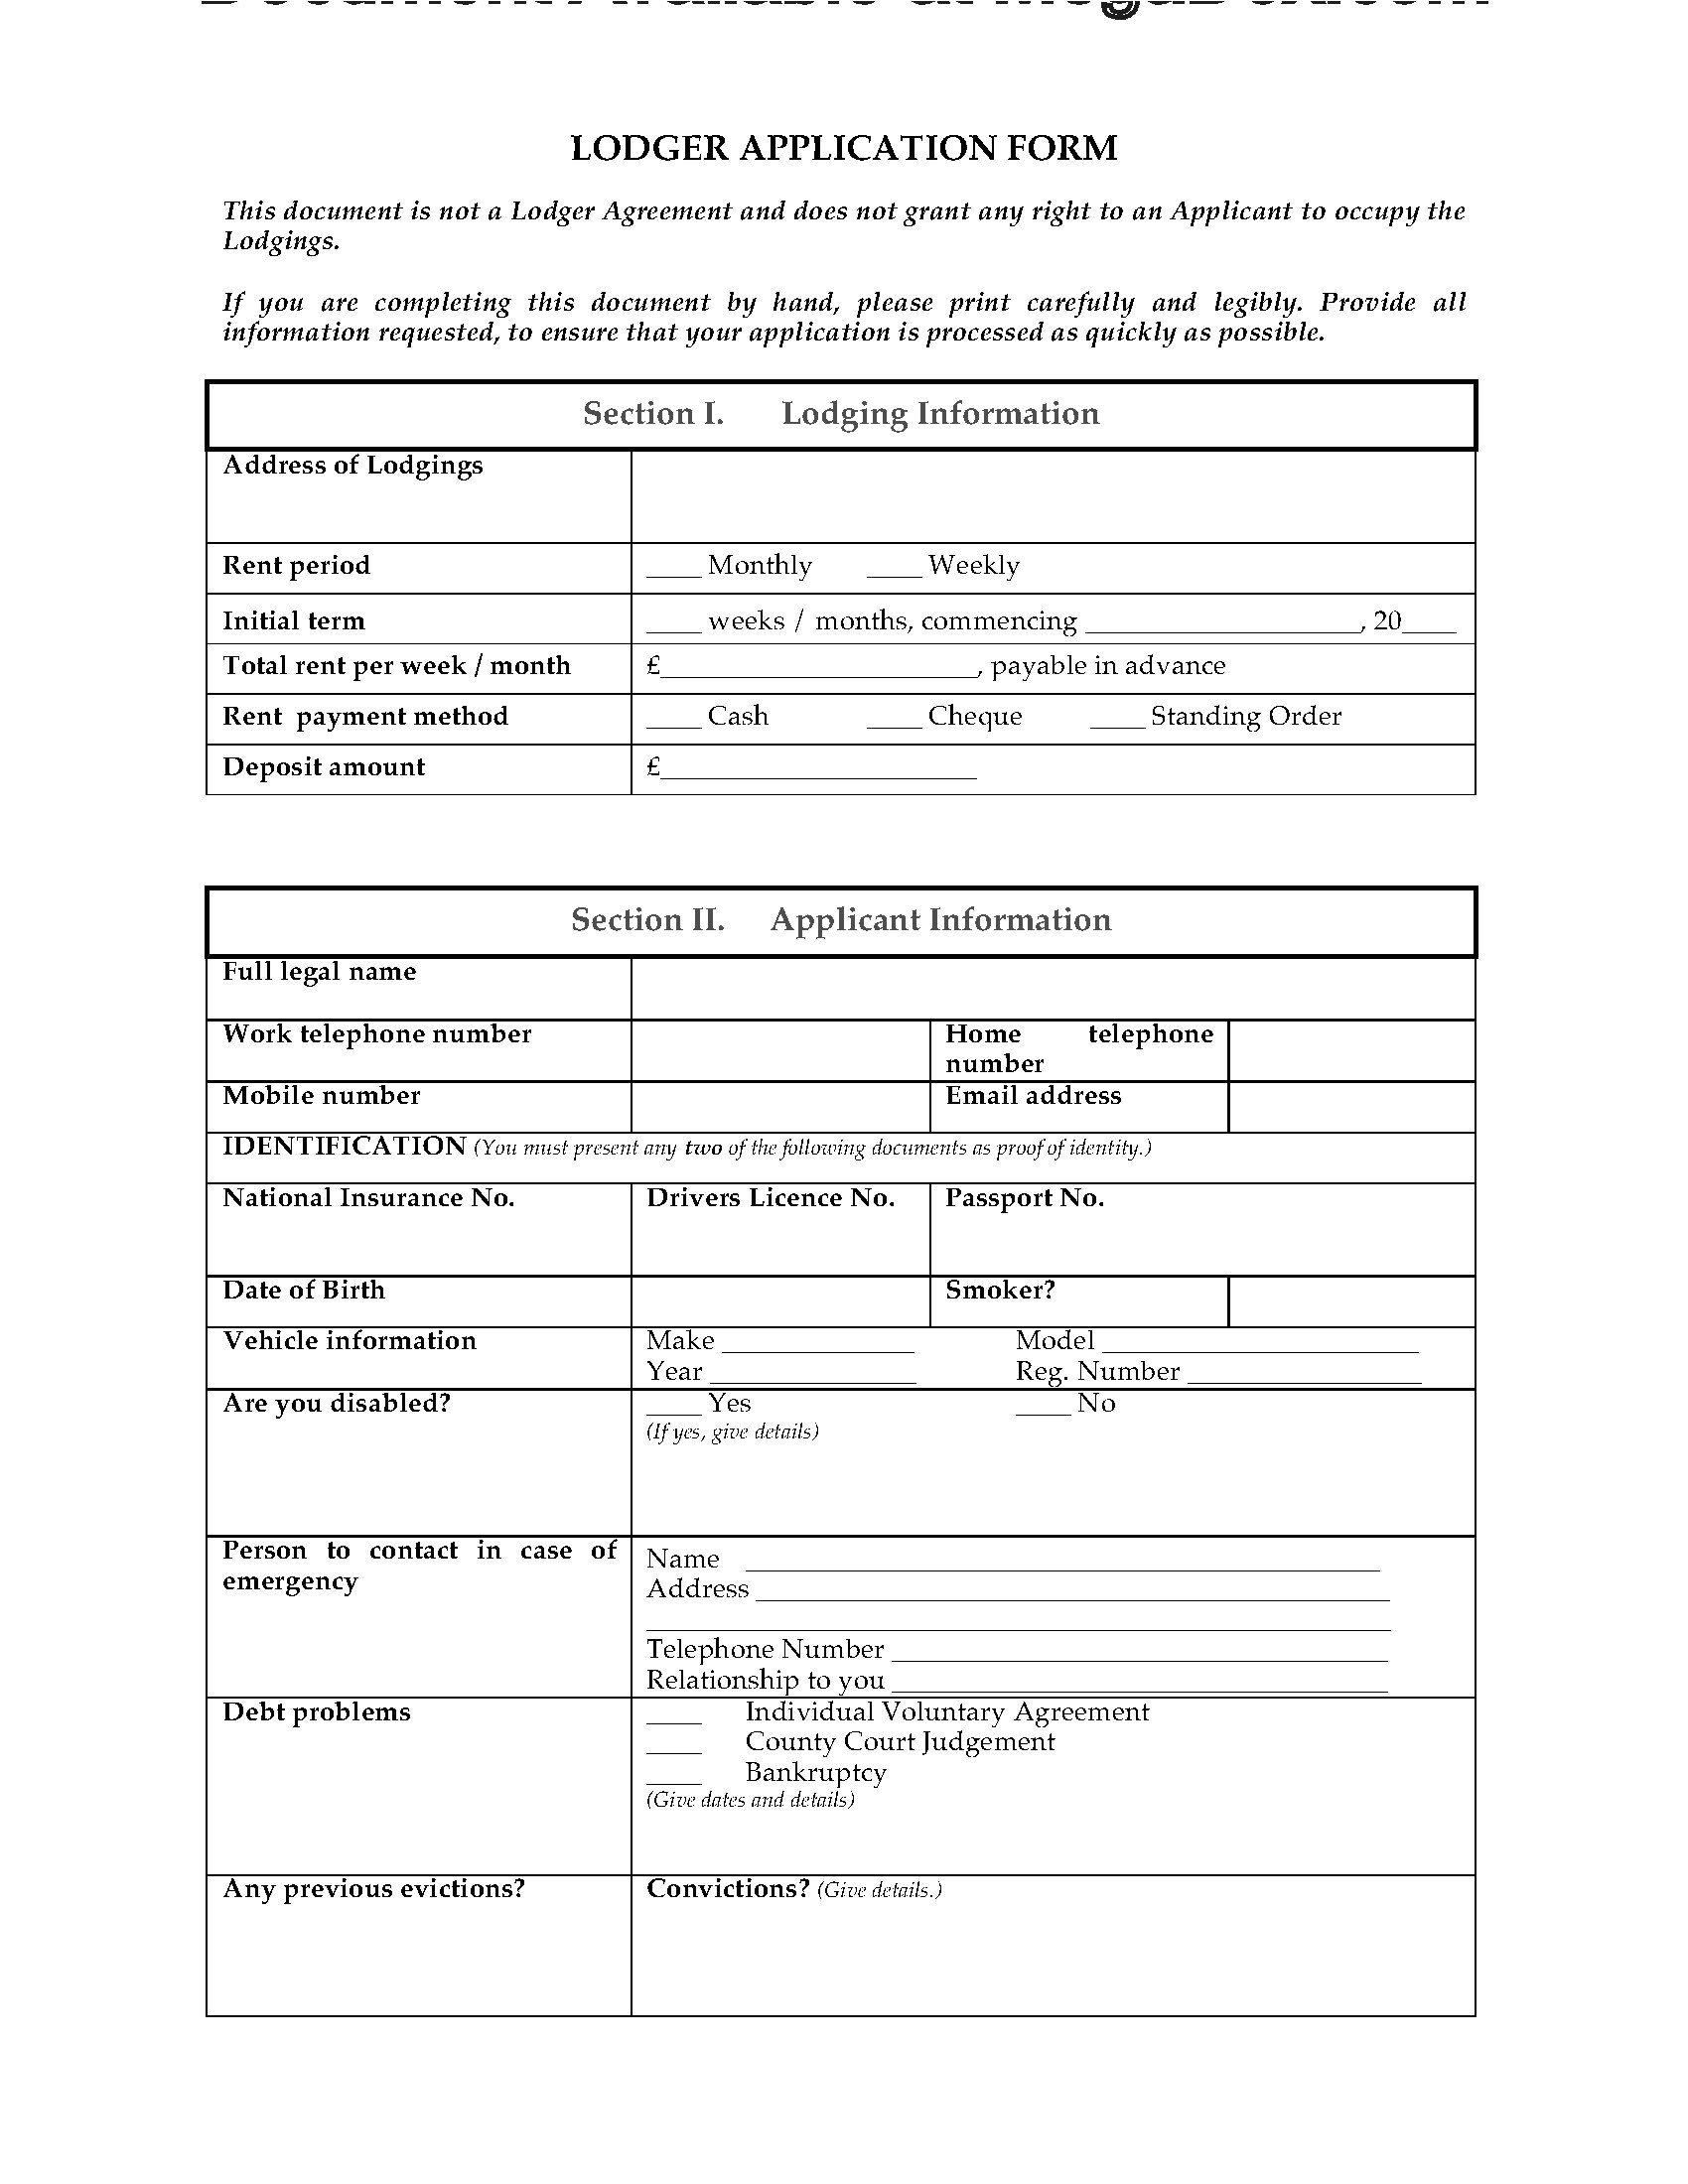 uk lodger application form